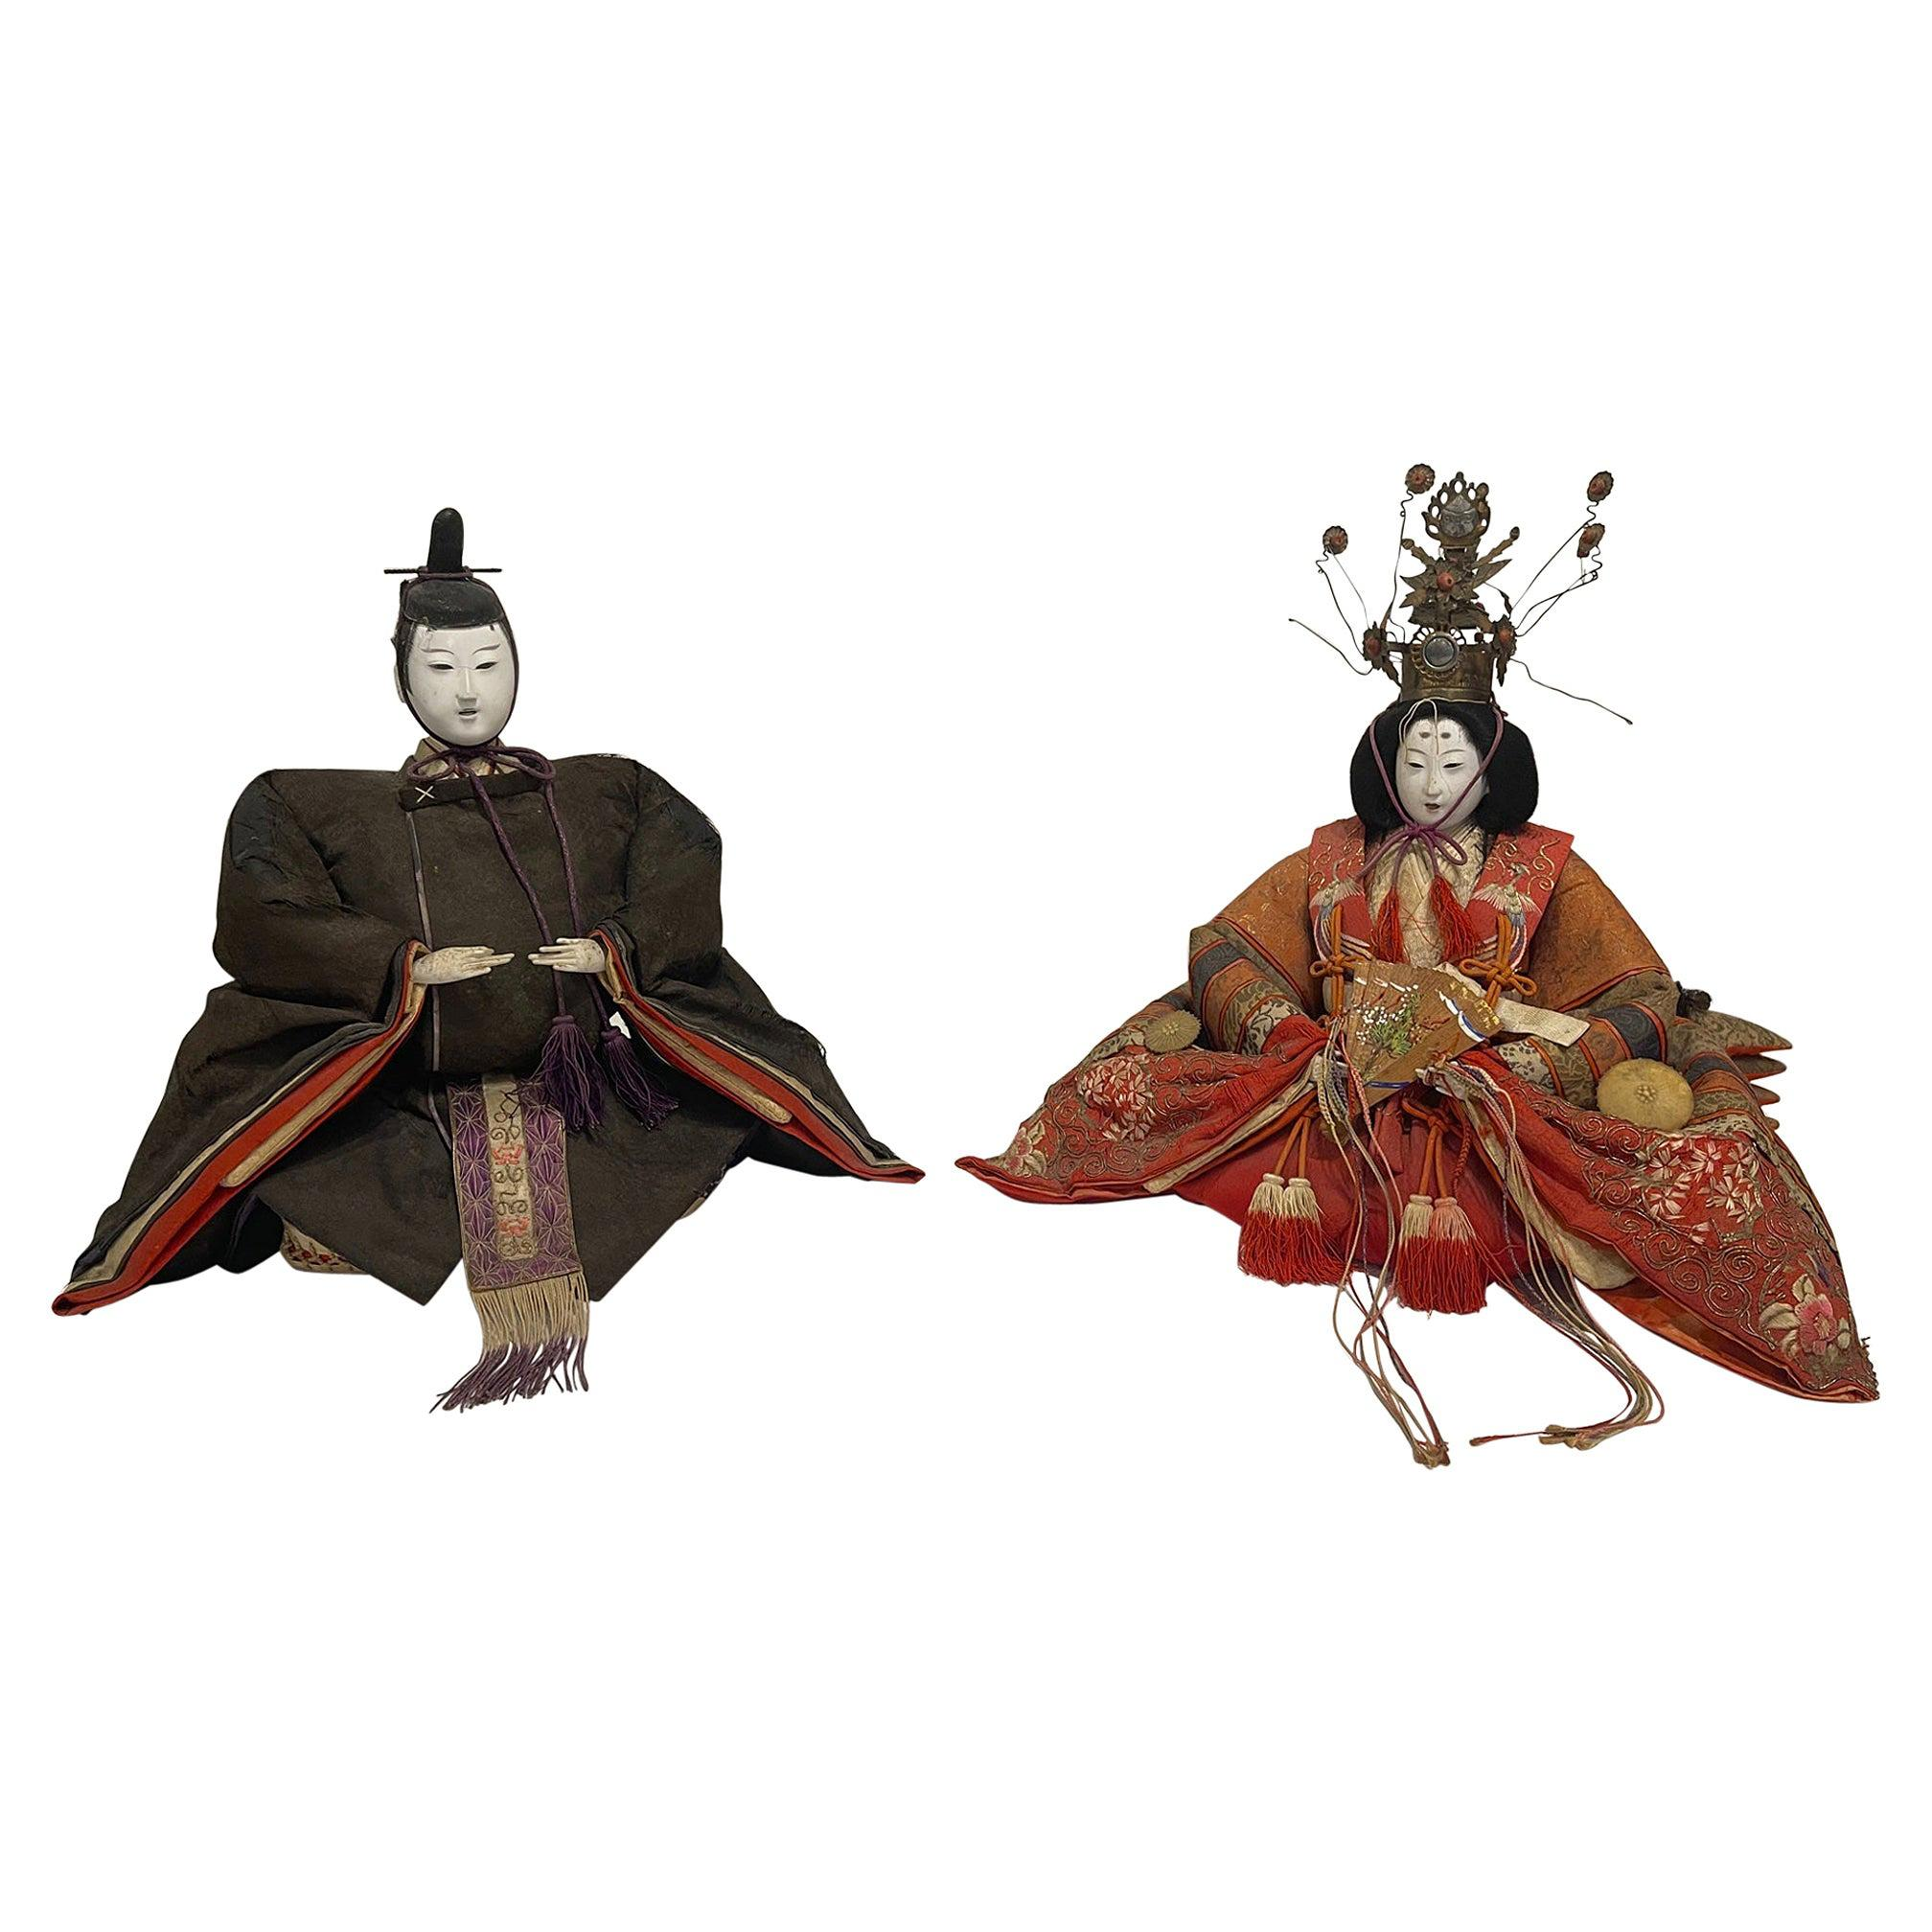 Antique Japanese Emperor and Empress Figures, Meji Period, Late 19th Century